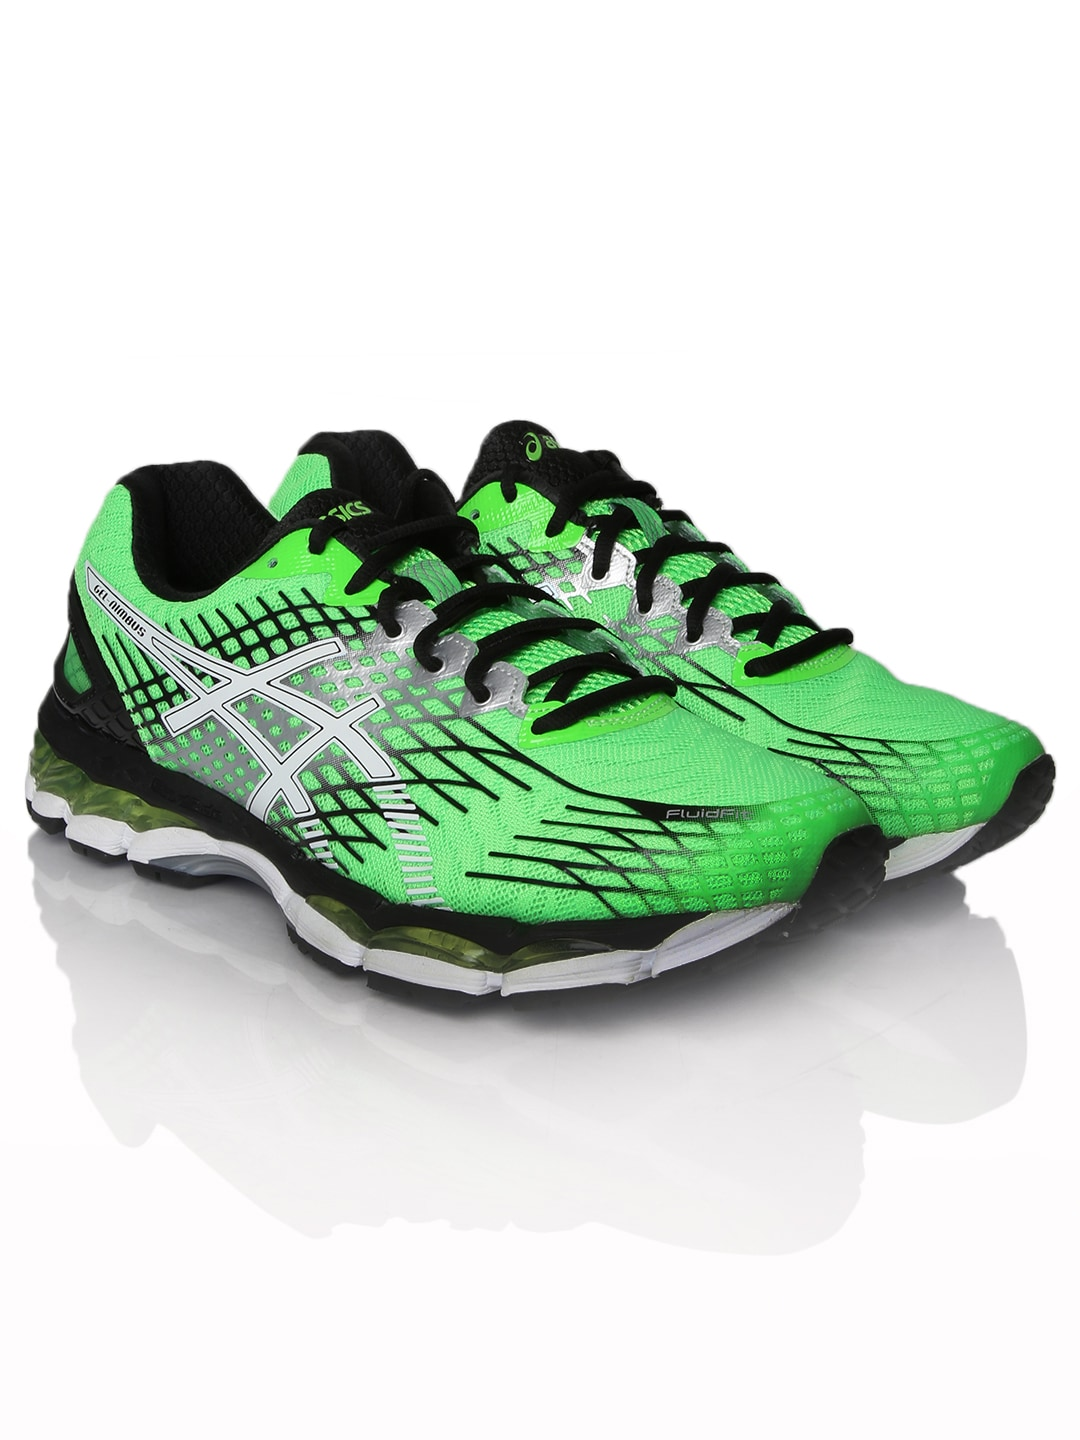 finest selection b2f4f e67ff Asics t508n-8501 Men Green Gel Nimbus 17 2e Running Shoes